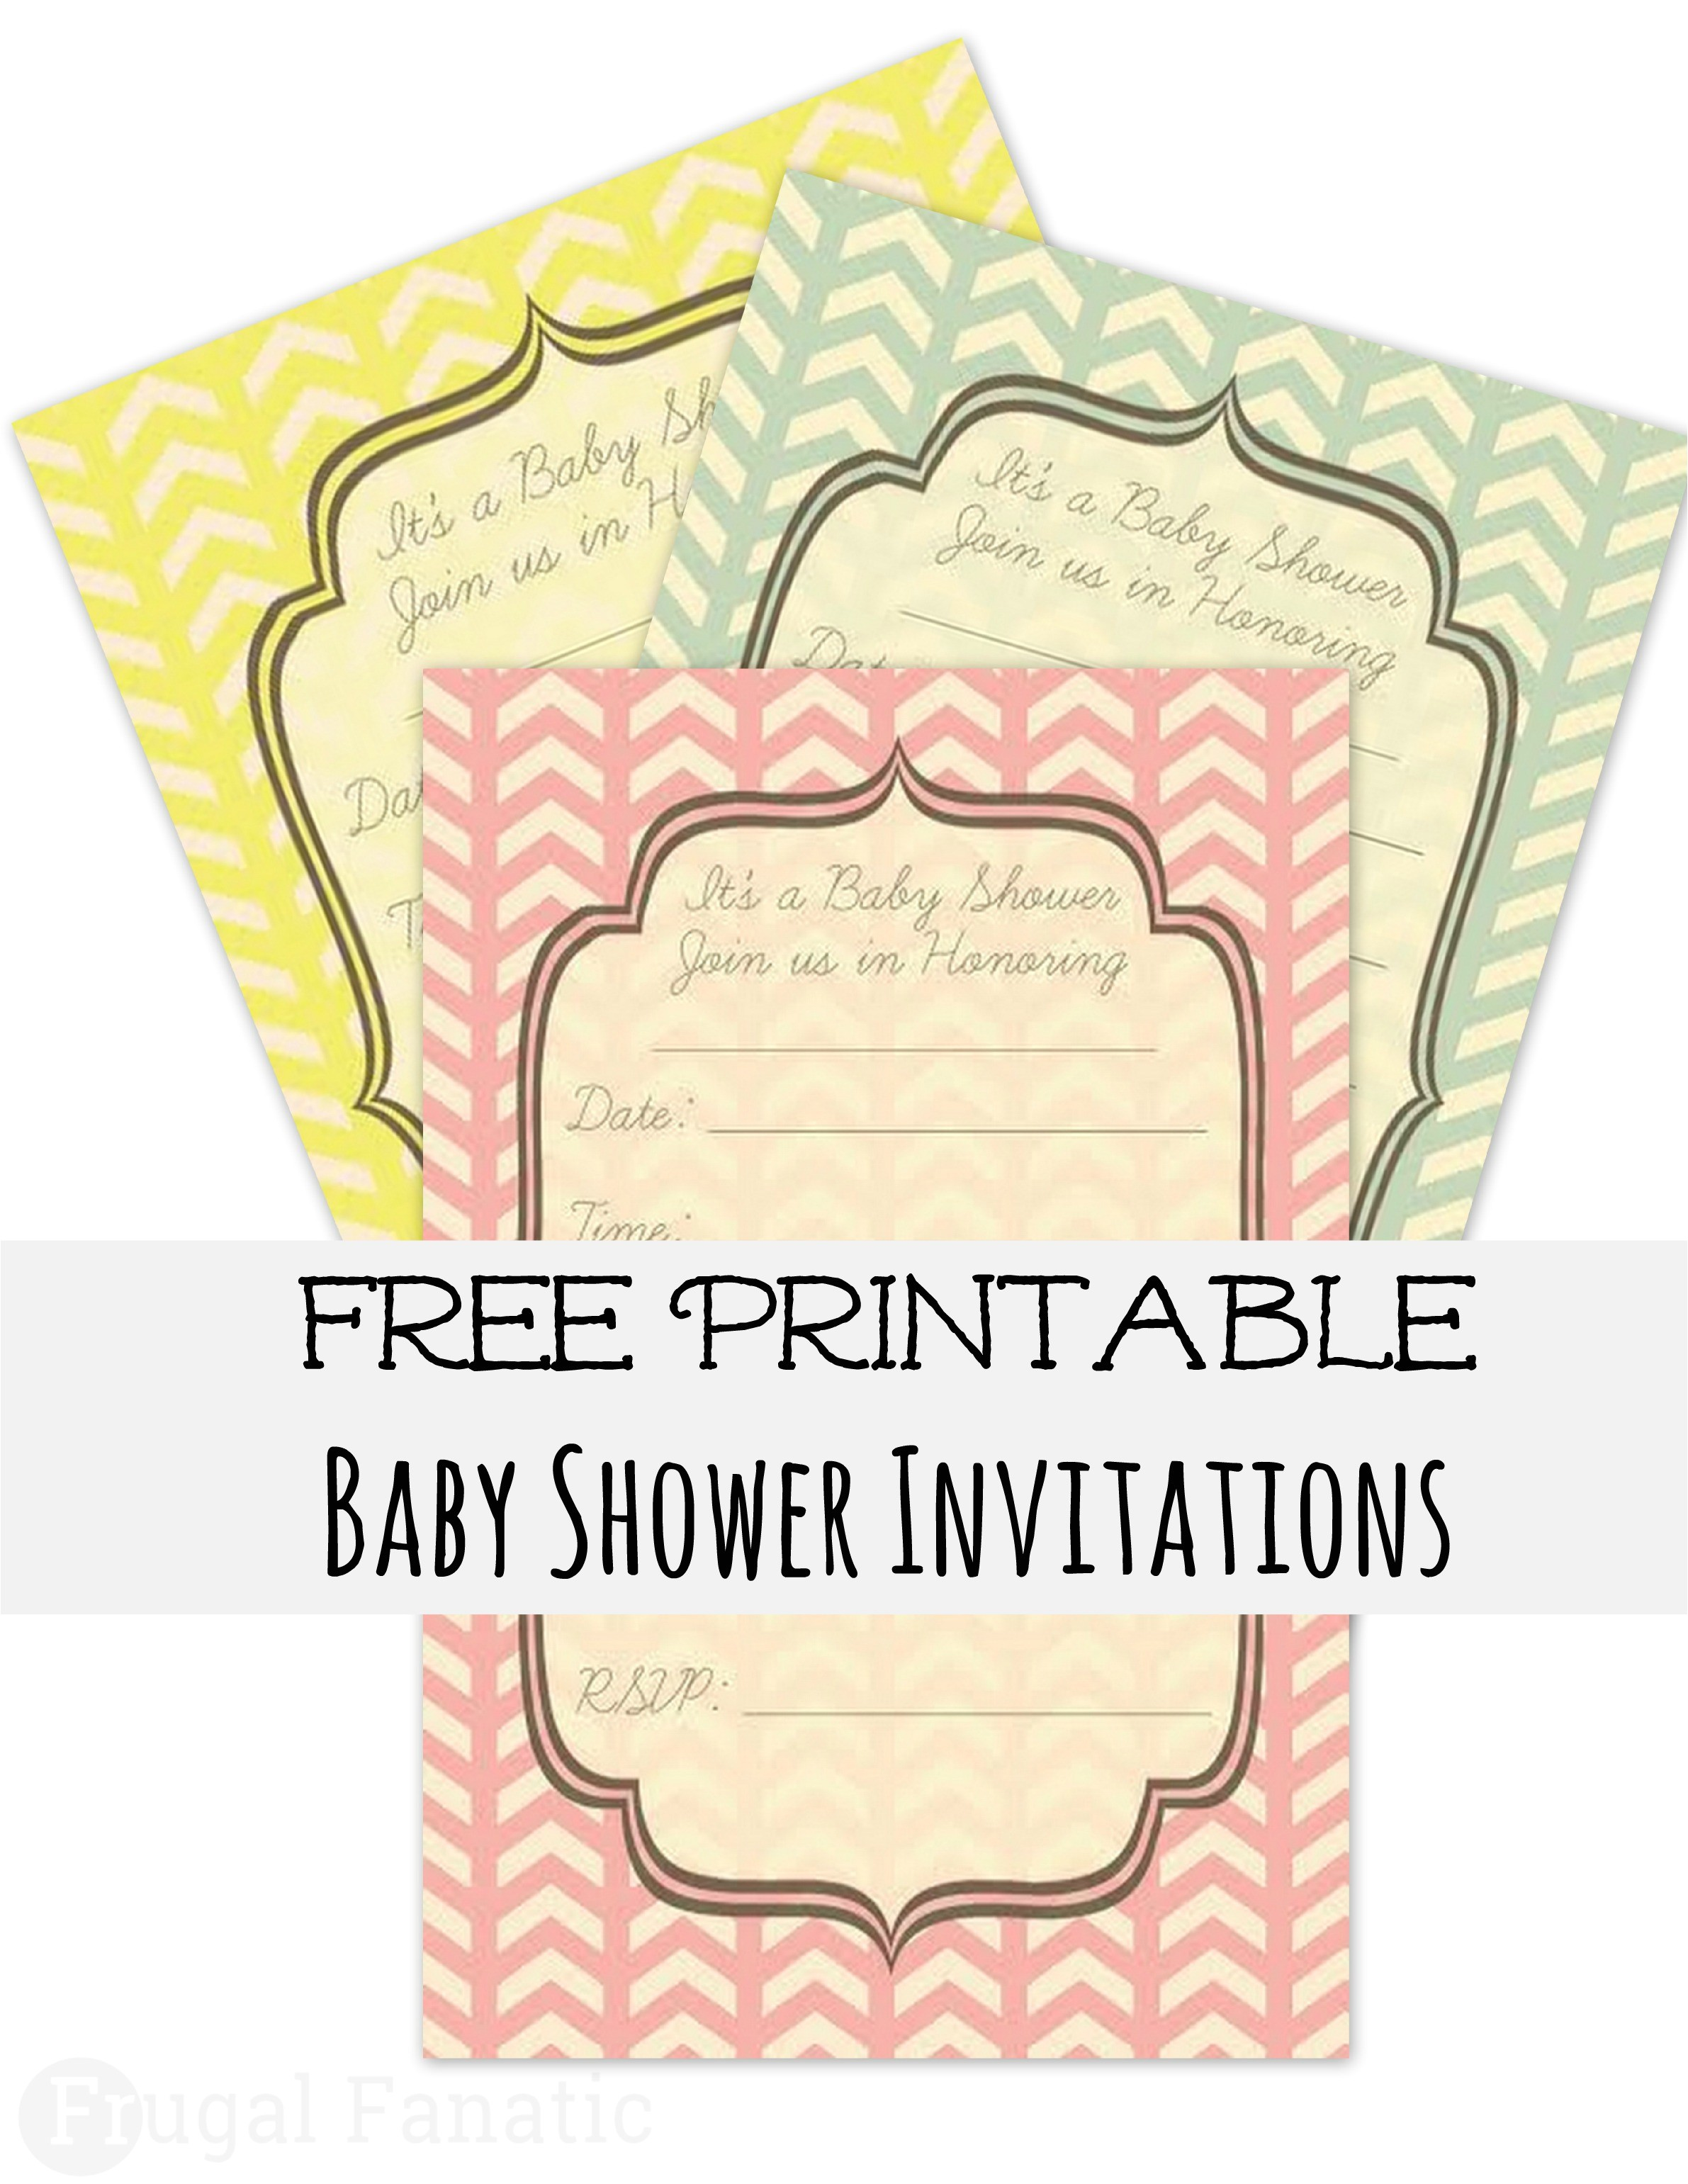 Create A Baby Shower Invitation Online Free Baby Shower Invitations Create Your Own Free